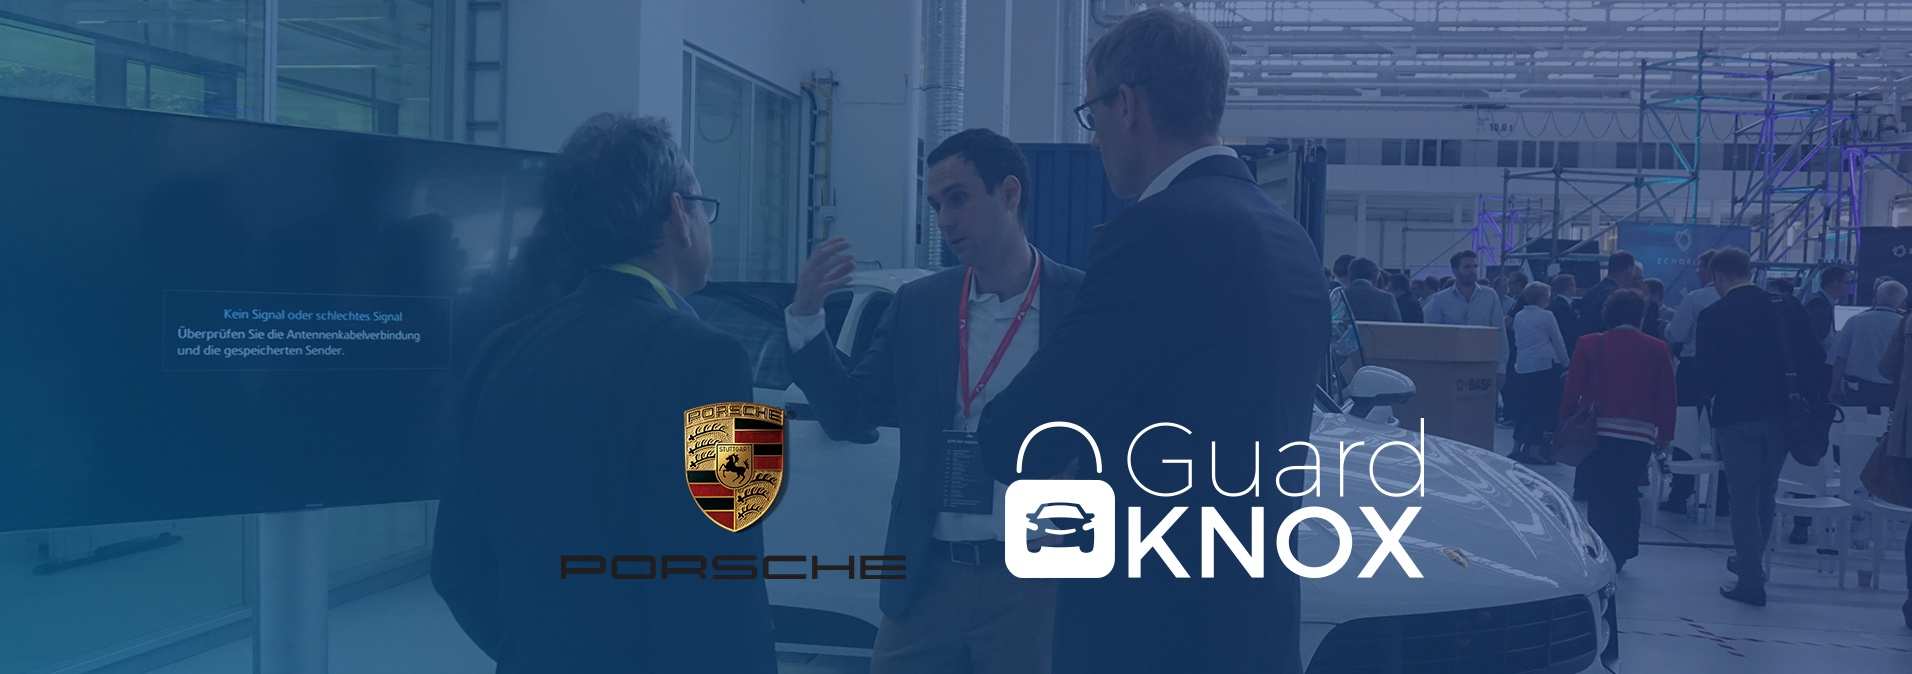 GaurdKnox and Porsche Demo the service oritented vehcile together